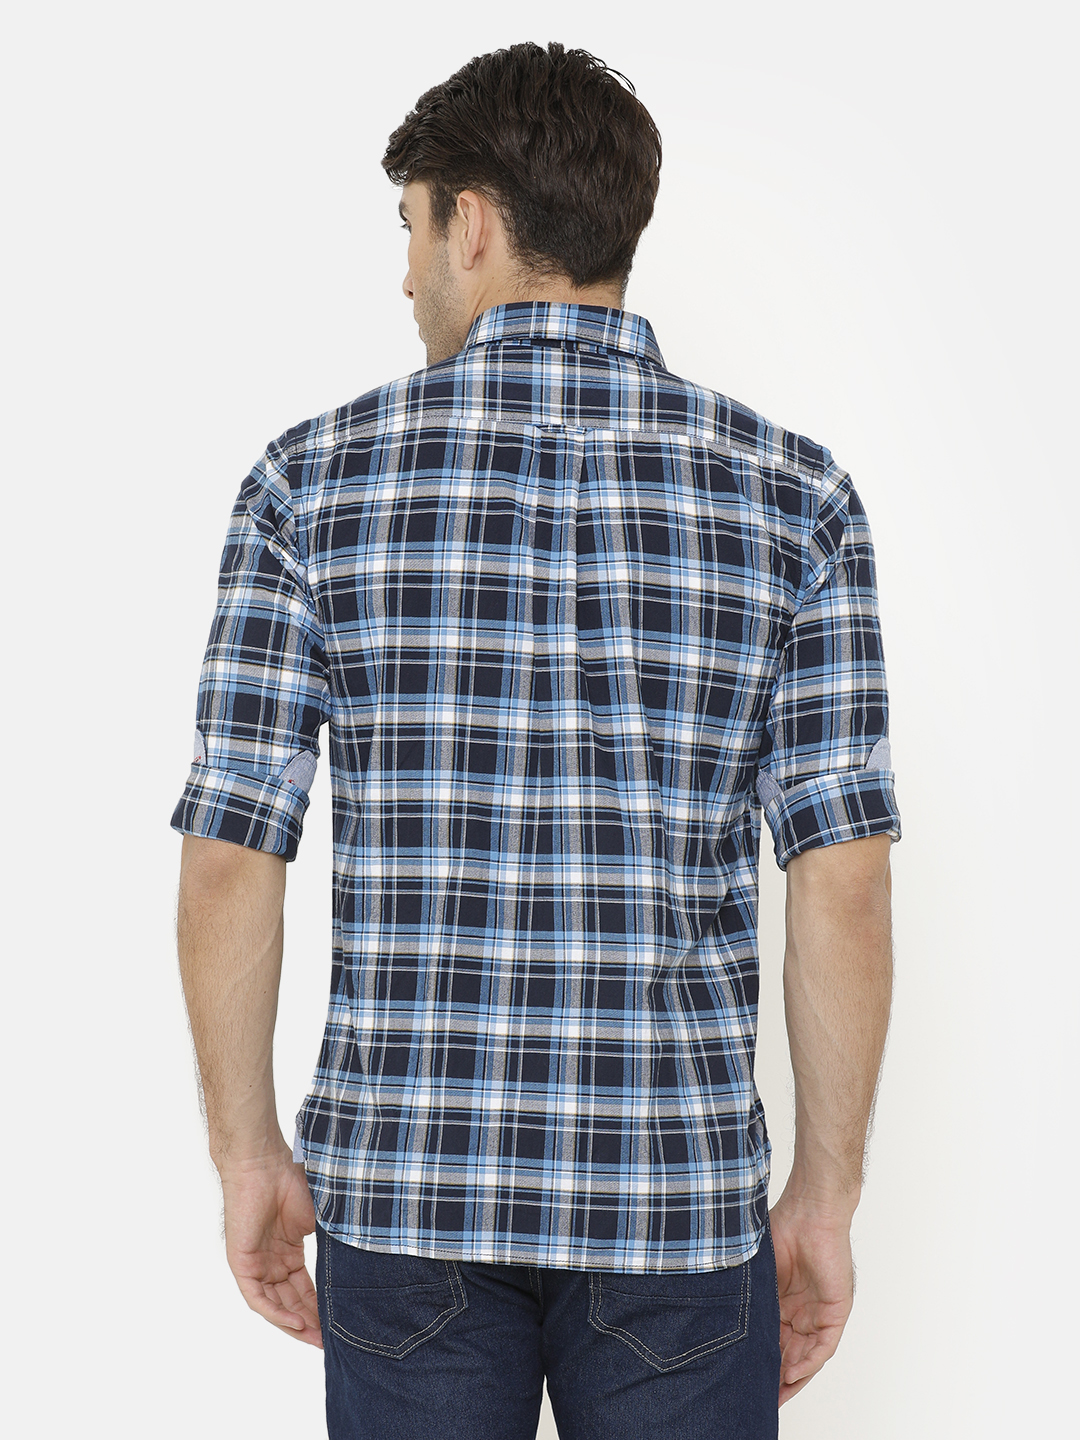 Bar Harbour Men Teal Blue & White Slim Fit Checked Casual Shirt